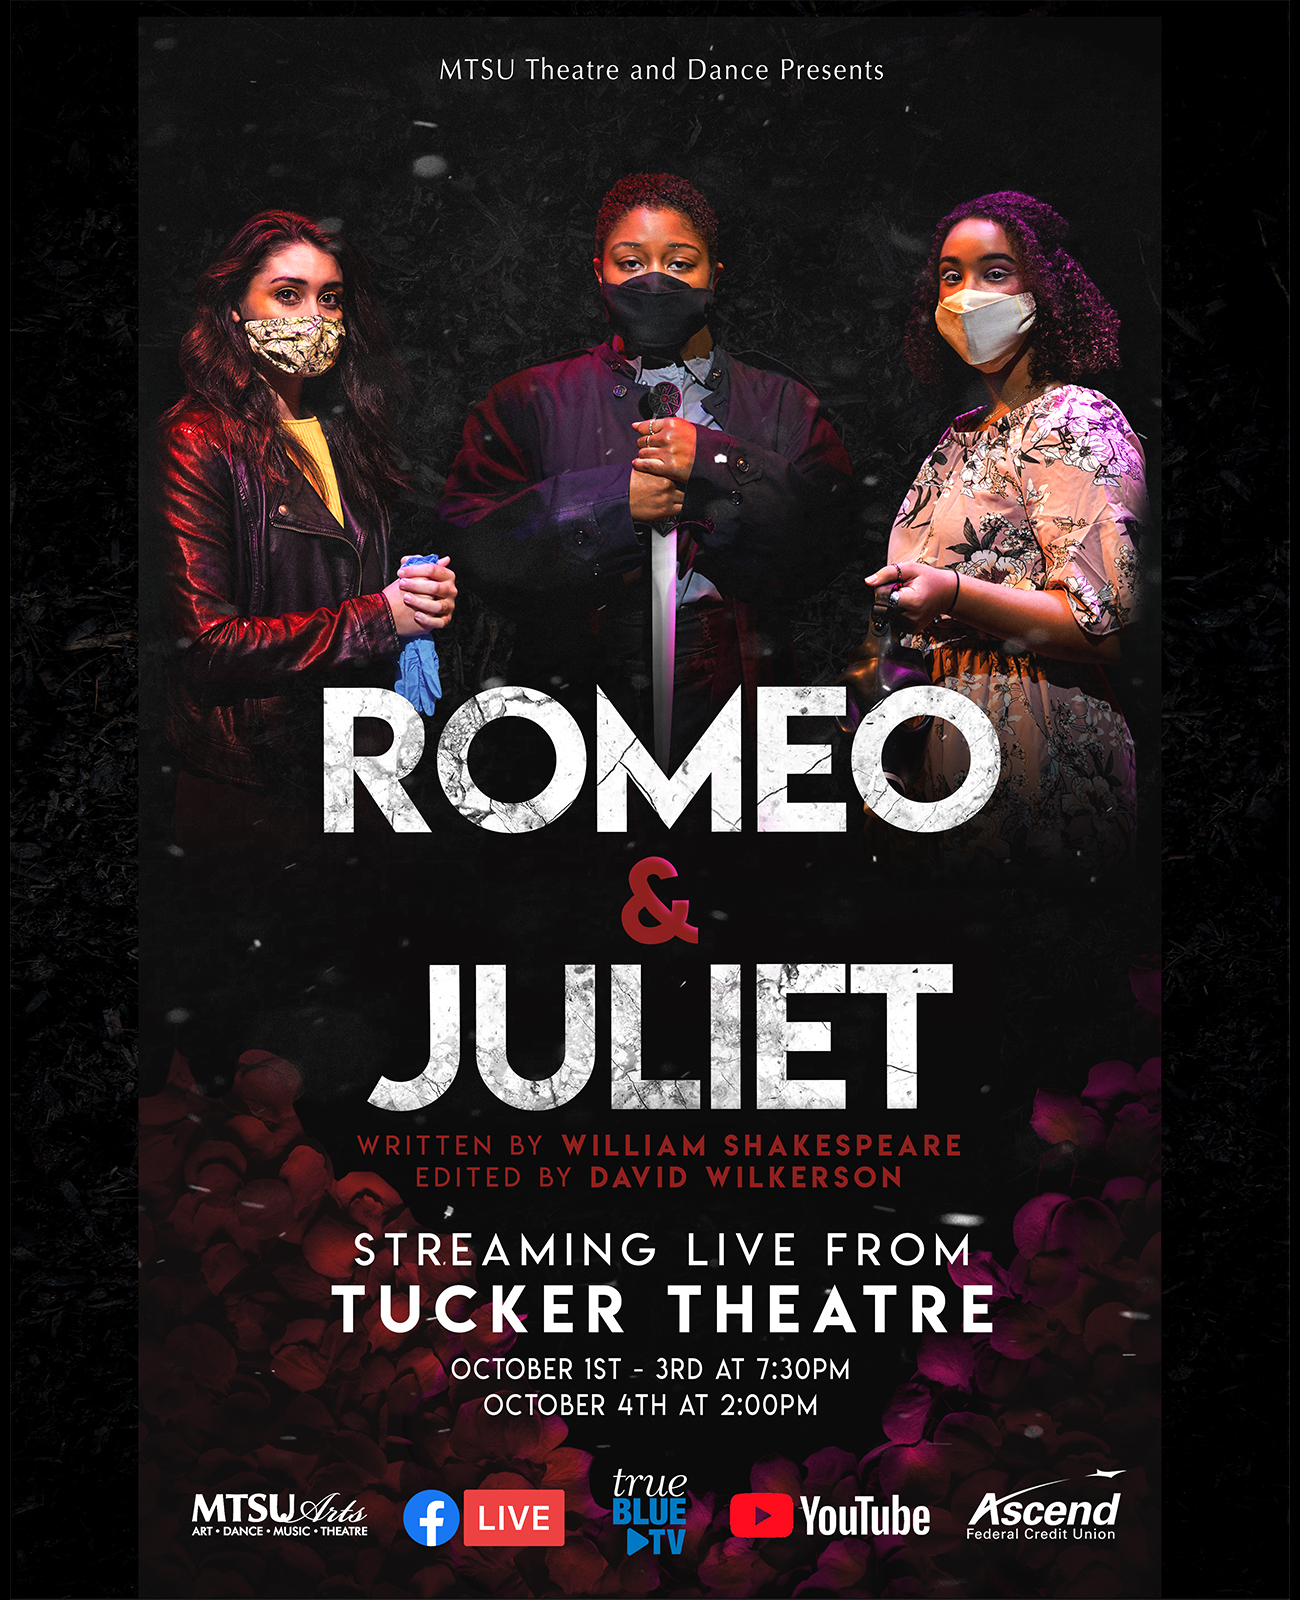 "MTSU Theatre performers are ready for the university's Oct. 1-4 production of William Shakespeare's ""Romeo and Juliet,"" which will air live at MTSU.edu/live, the True Blue TV channel and the MTSU and MTSU Theatre Facebook Live sites. Cast members shown from left are MTSU senior Alexa Pulley of Cunningham, Tenn., who portrays Romeo; sophomore Zoe Jones of Antioch, Tenn., who portrays Friar Laurence; and senior Katlyn Marion of Murfreesboro, who portrays Juliet. (MTSU Theatre poster)"